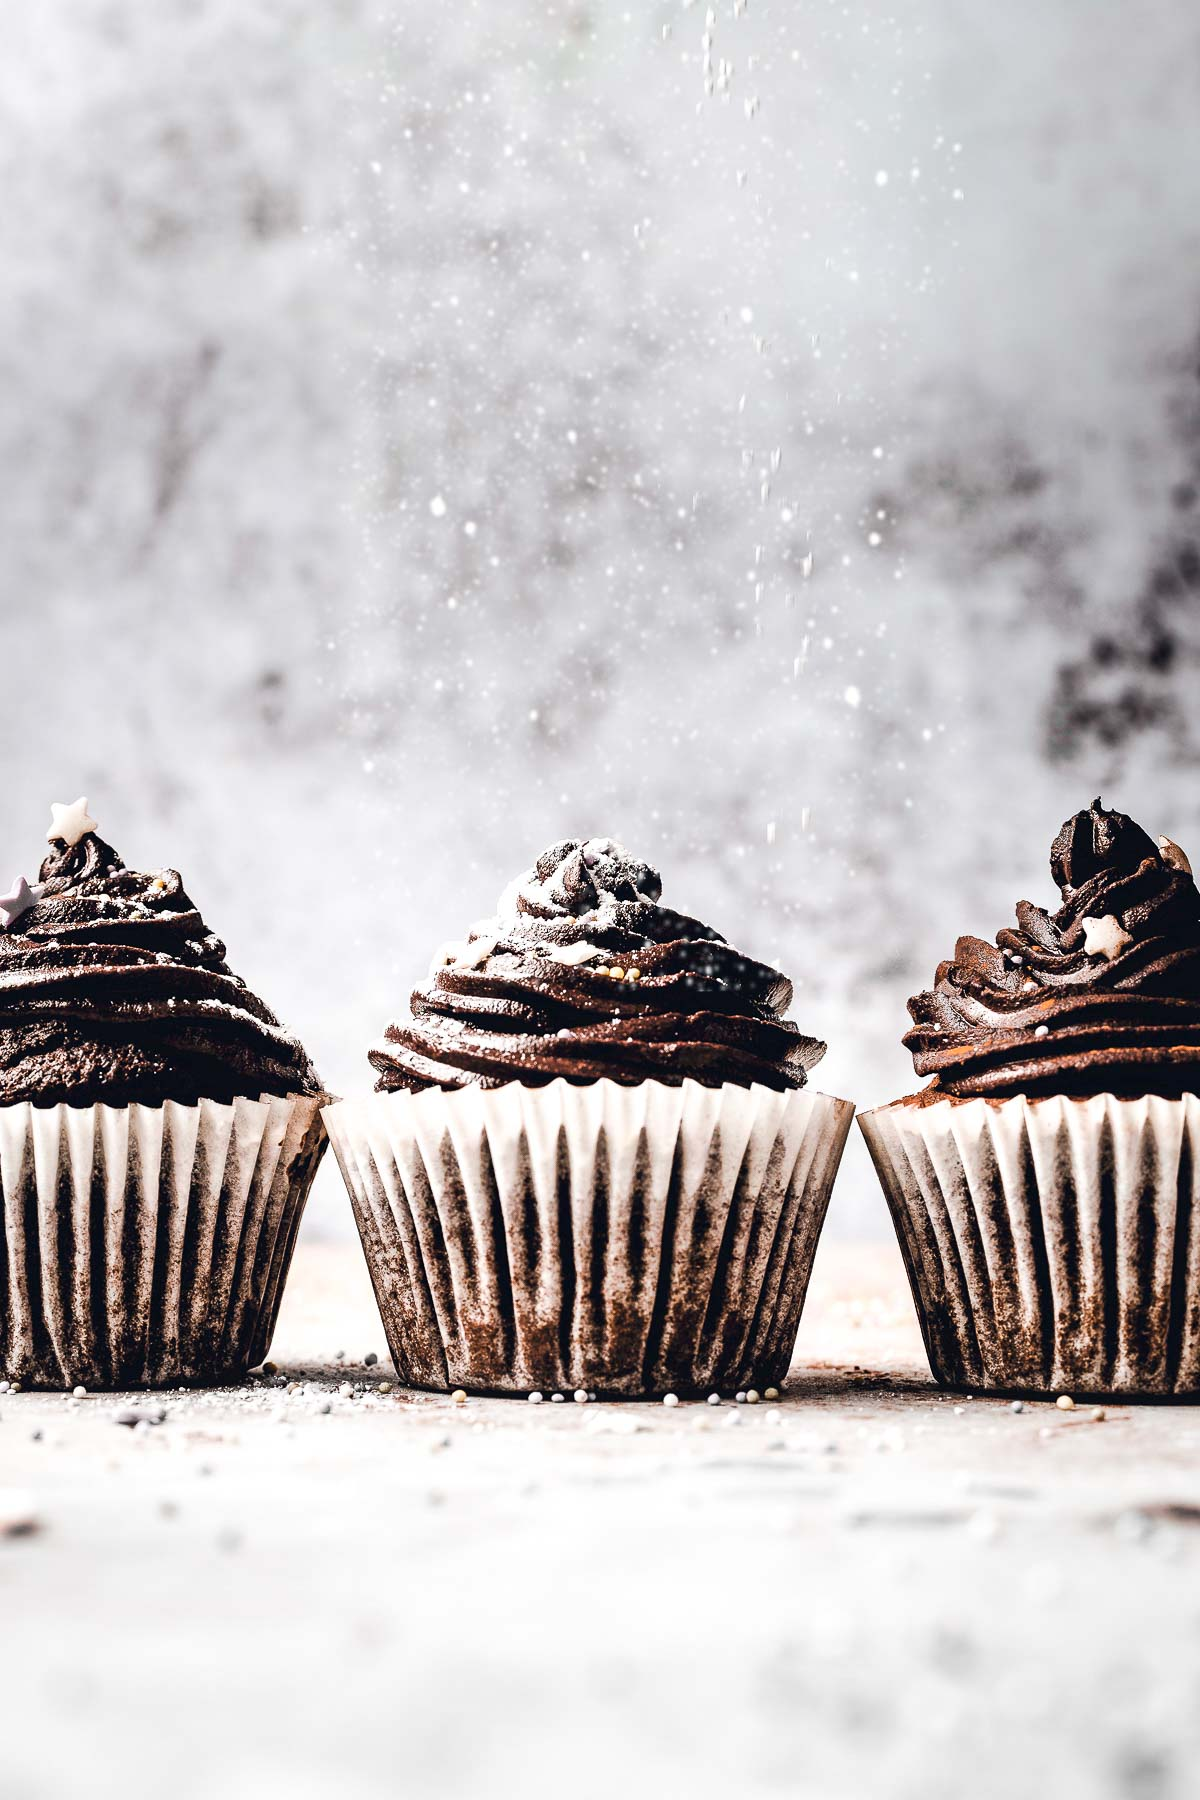 Three chocolate cupcakes side by side being dusted with powdered sugar.